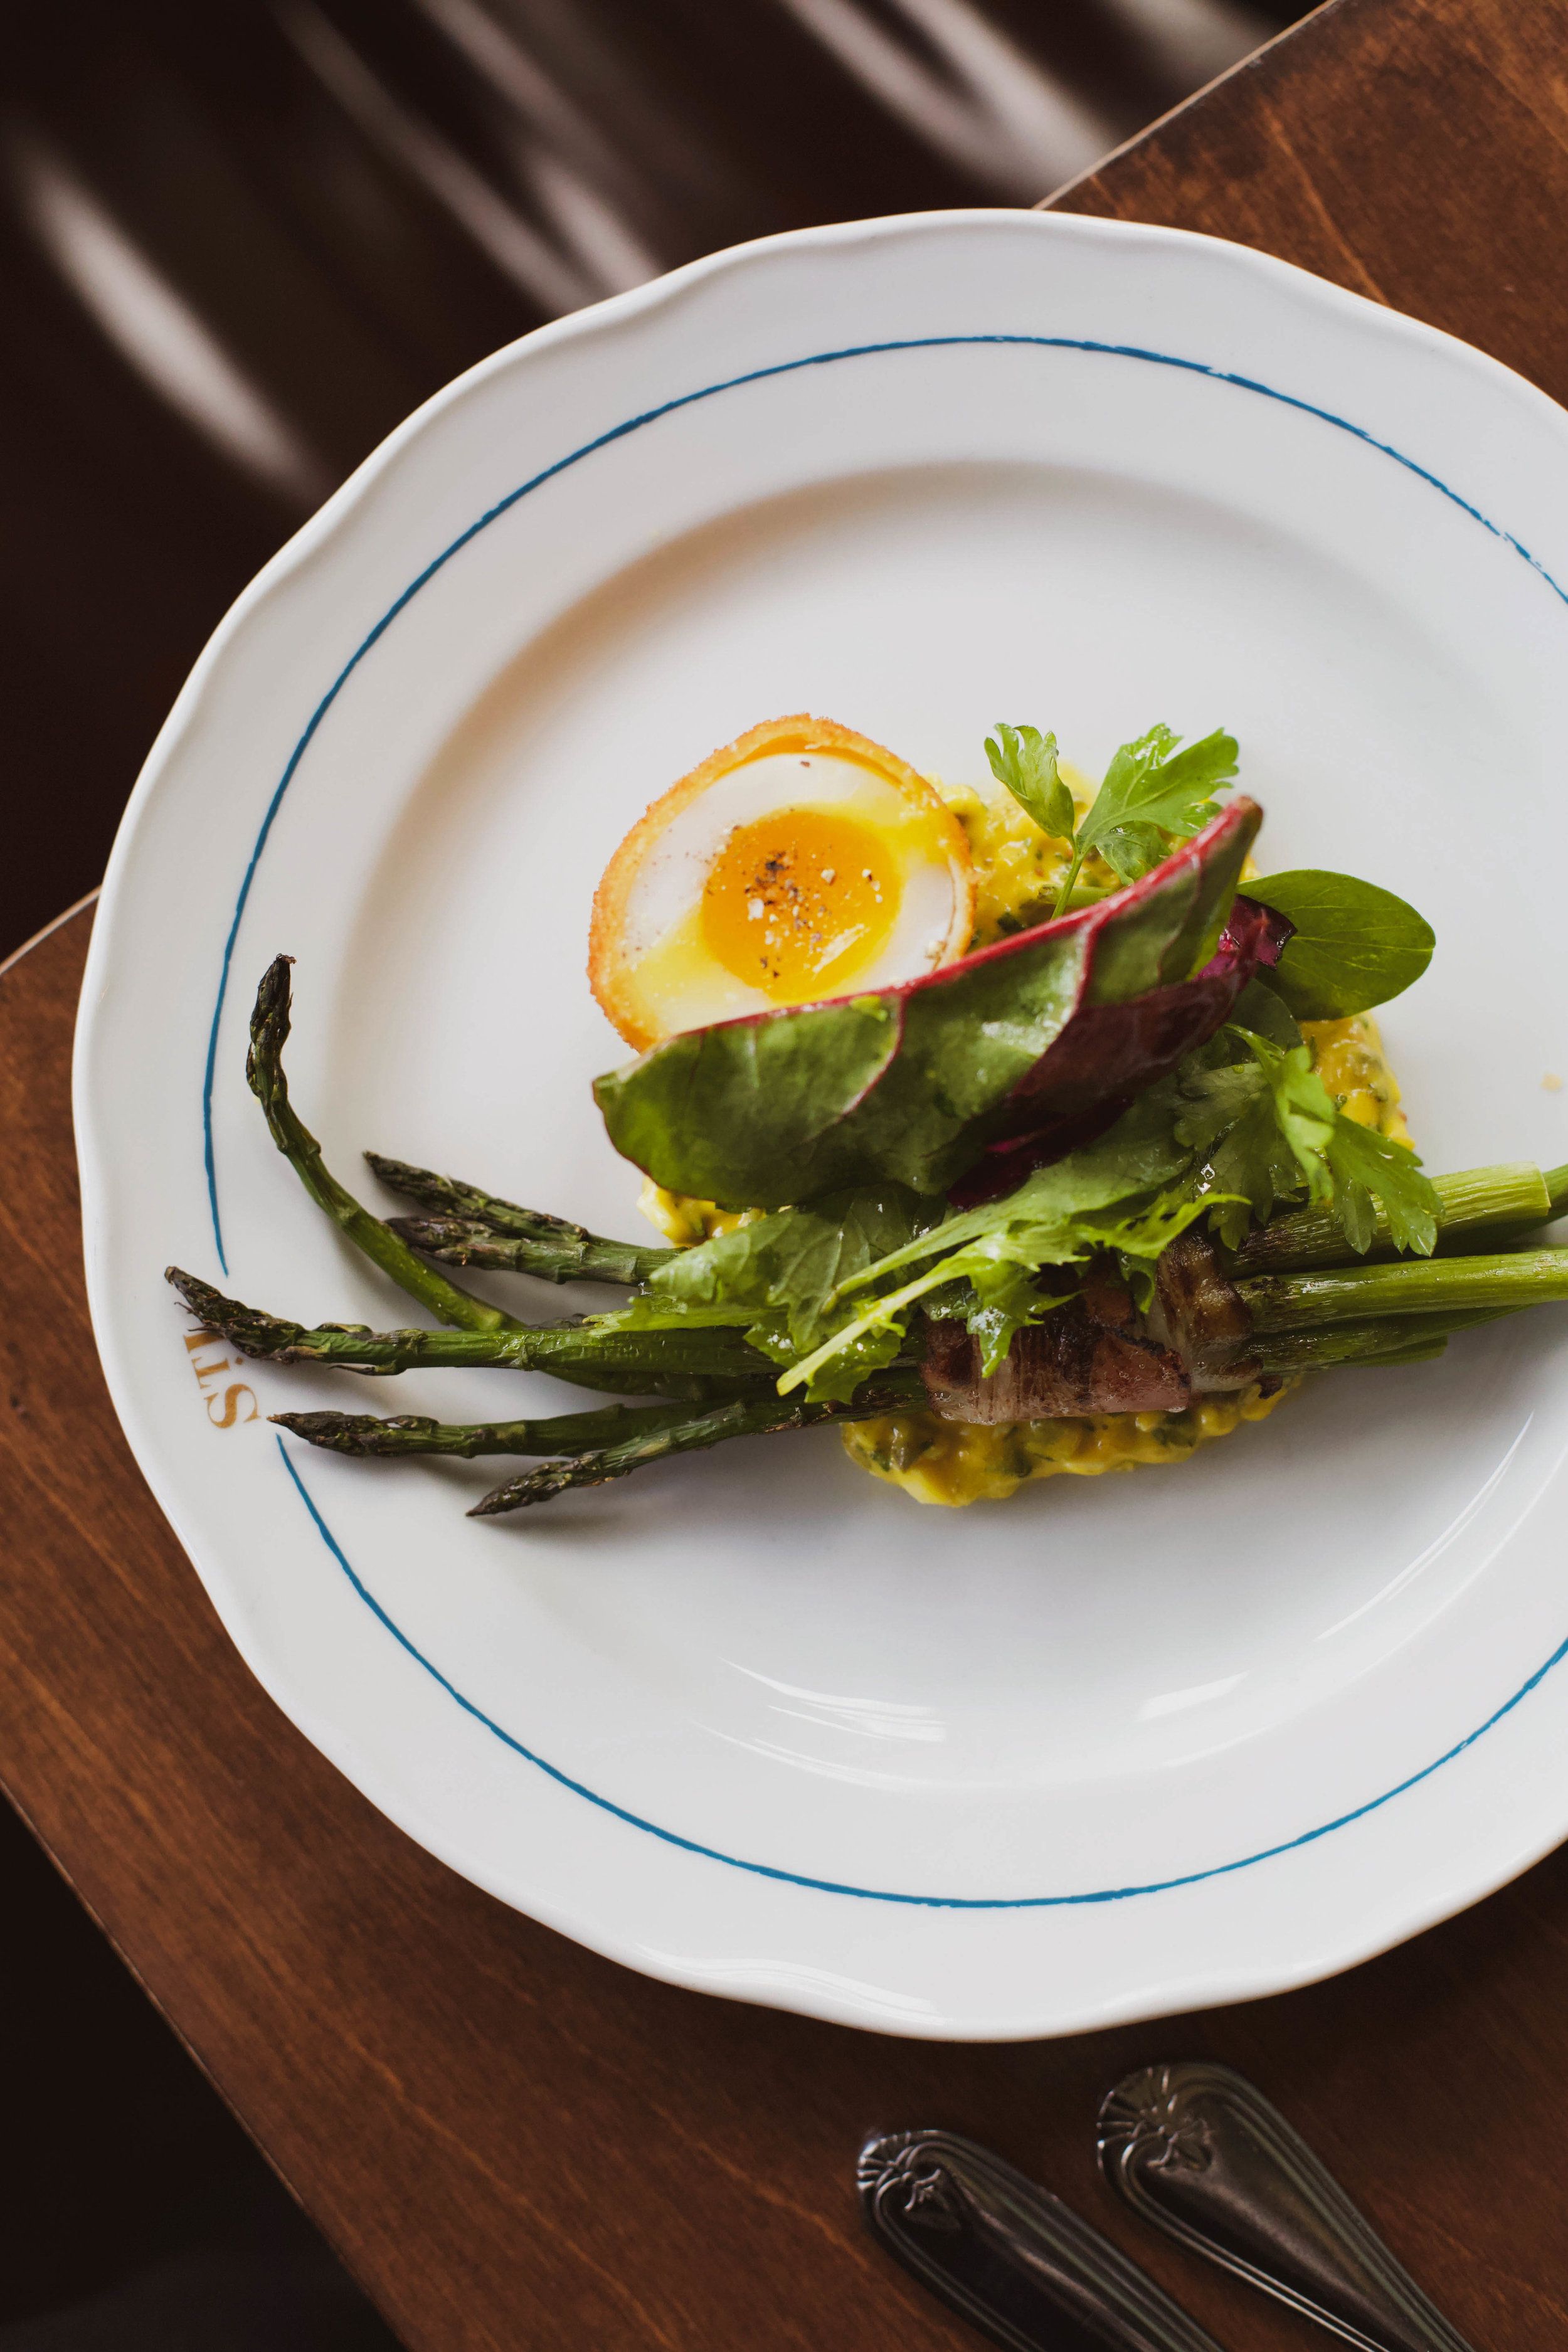 bacon-wrapped asparagus, duck egg, and  sauce ravigote